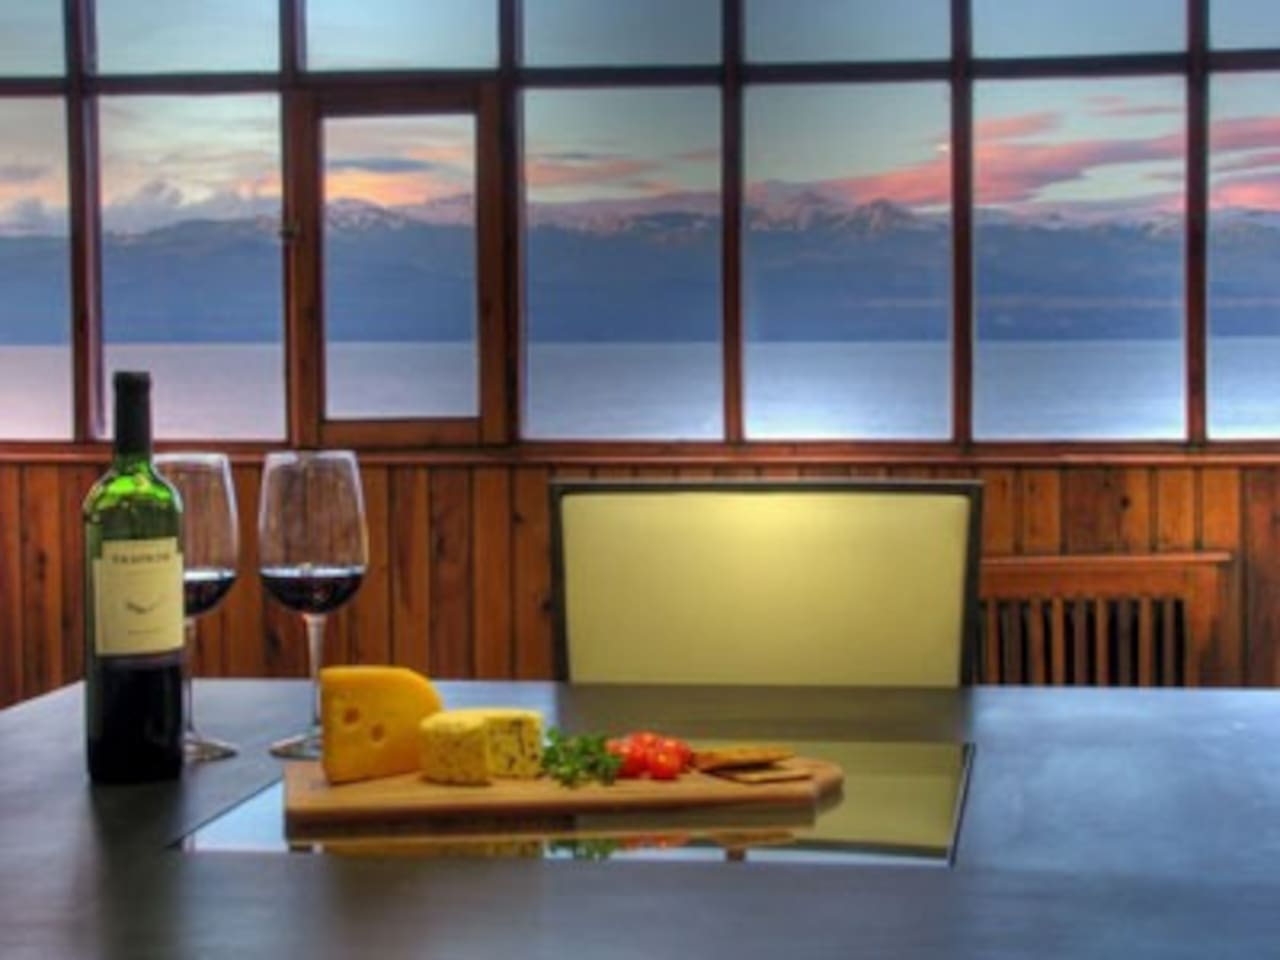 Living lounge and kitchen open plan and all with this view from the 3metre wide window. Breathtaking views all day long.